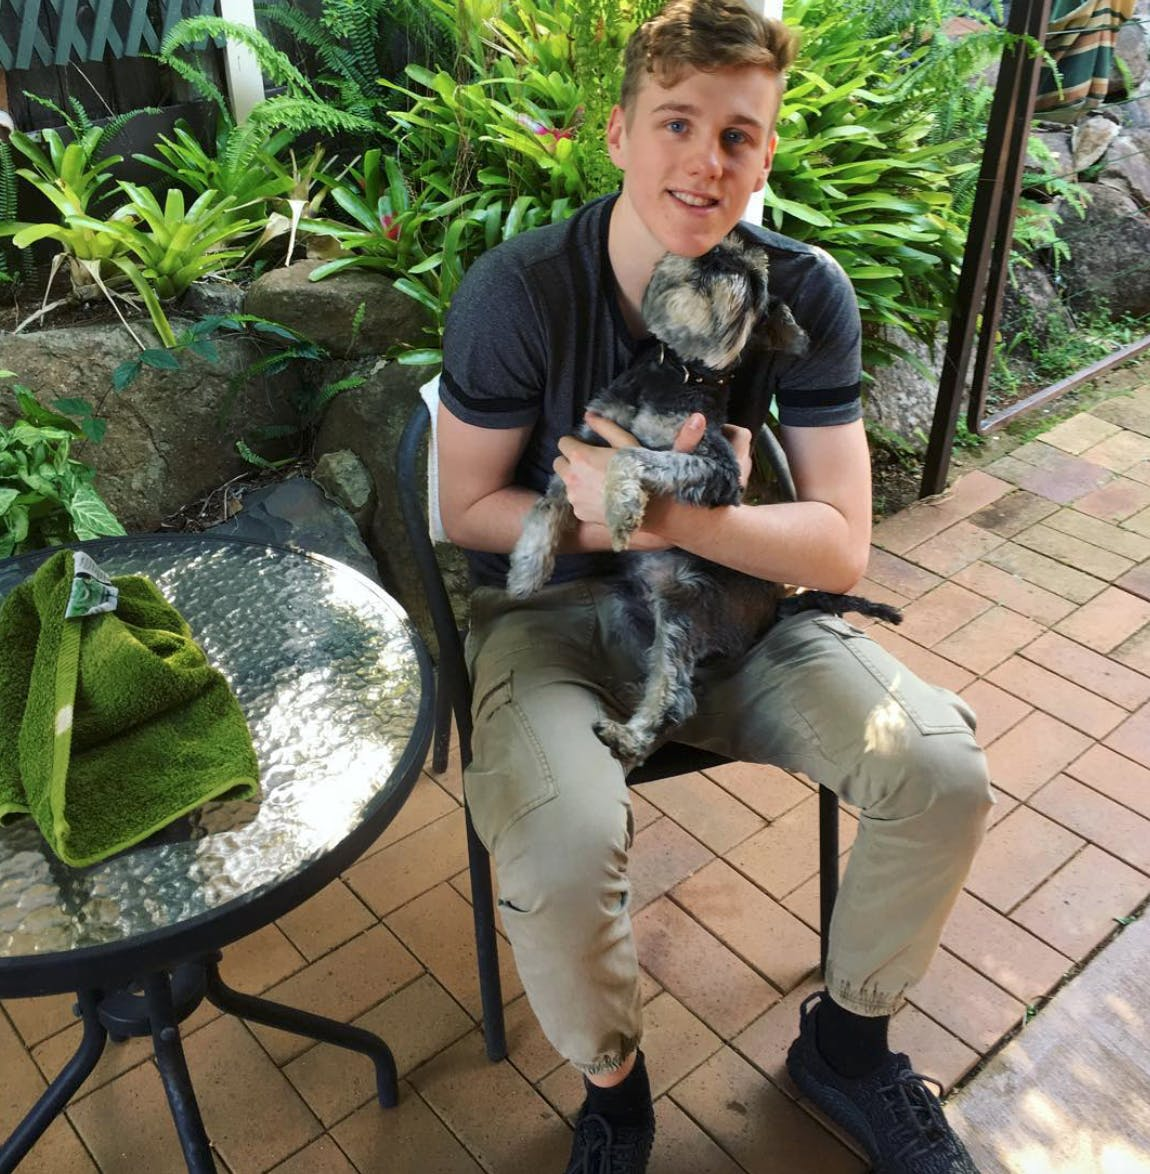 Lachlan Power with his dog Max